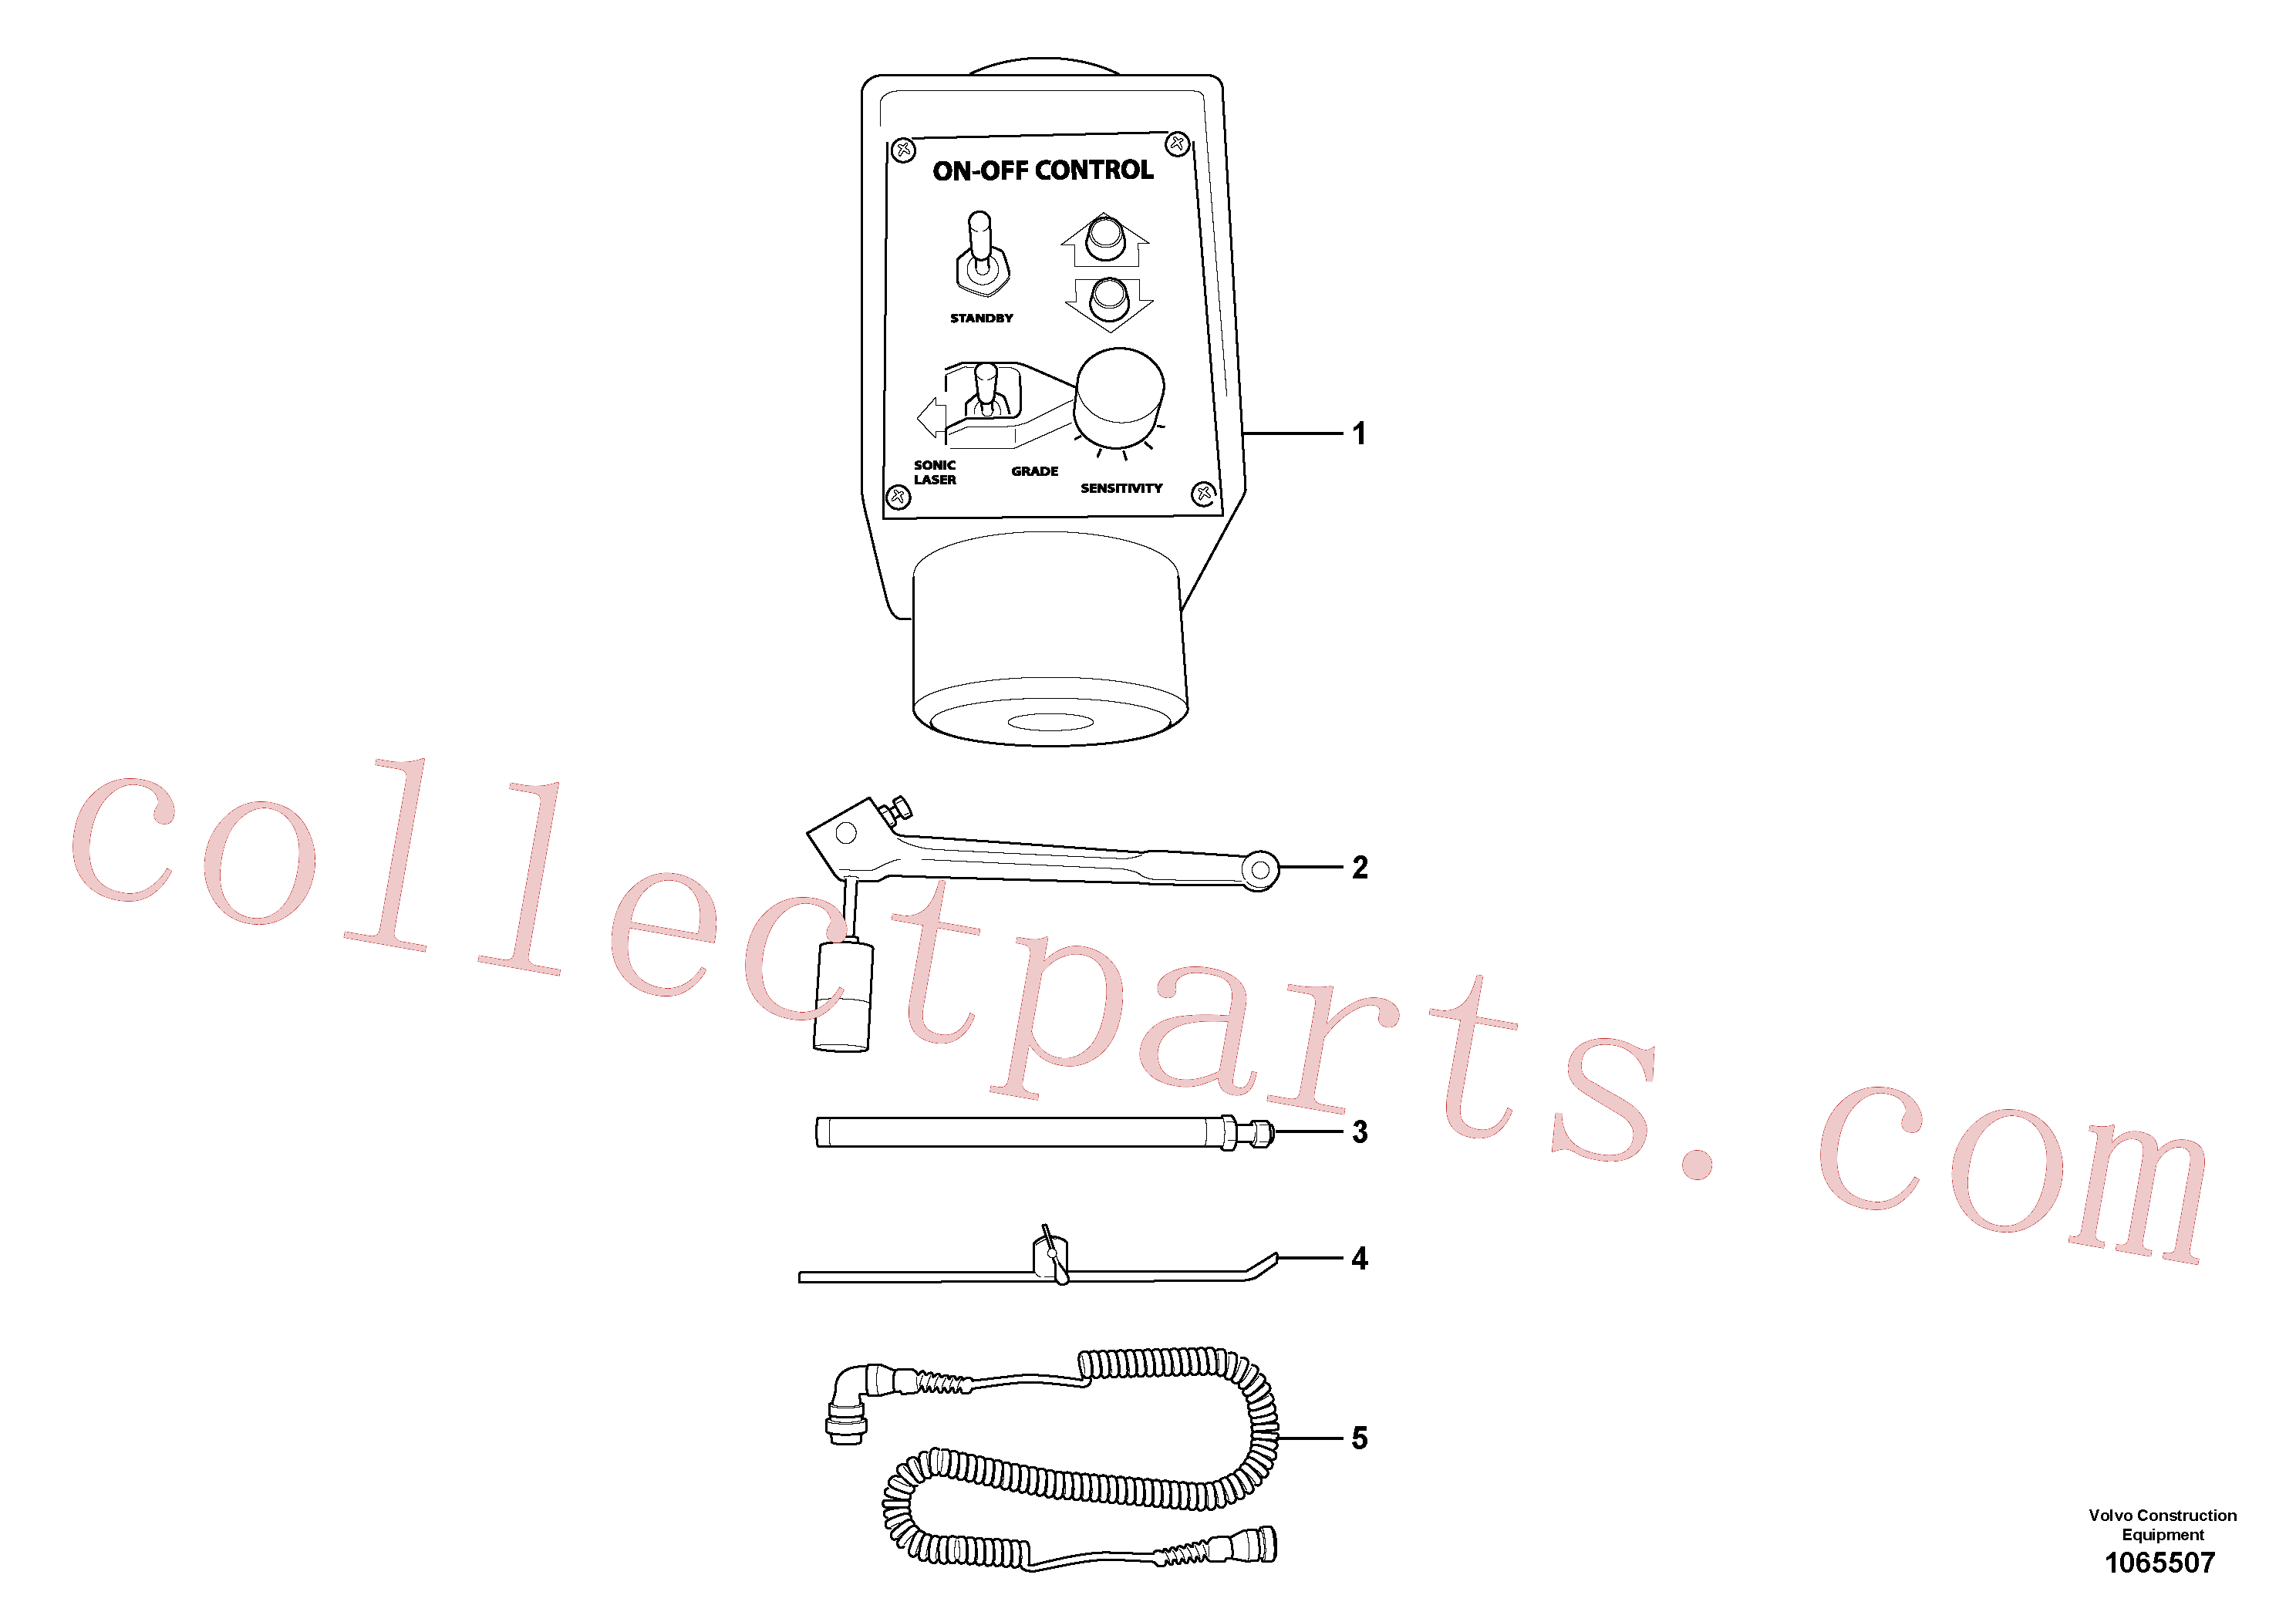 RM13913058 for Volvo Analog Grade Sensor Bs(1065507 assembly)